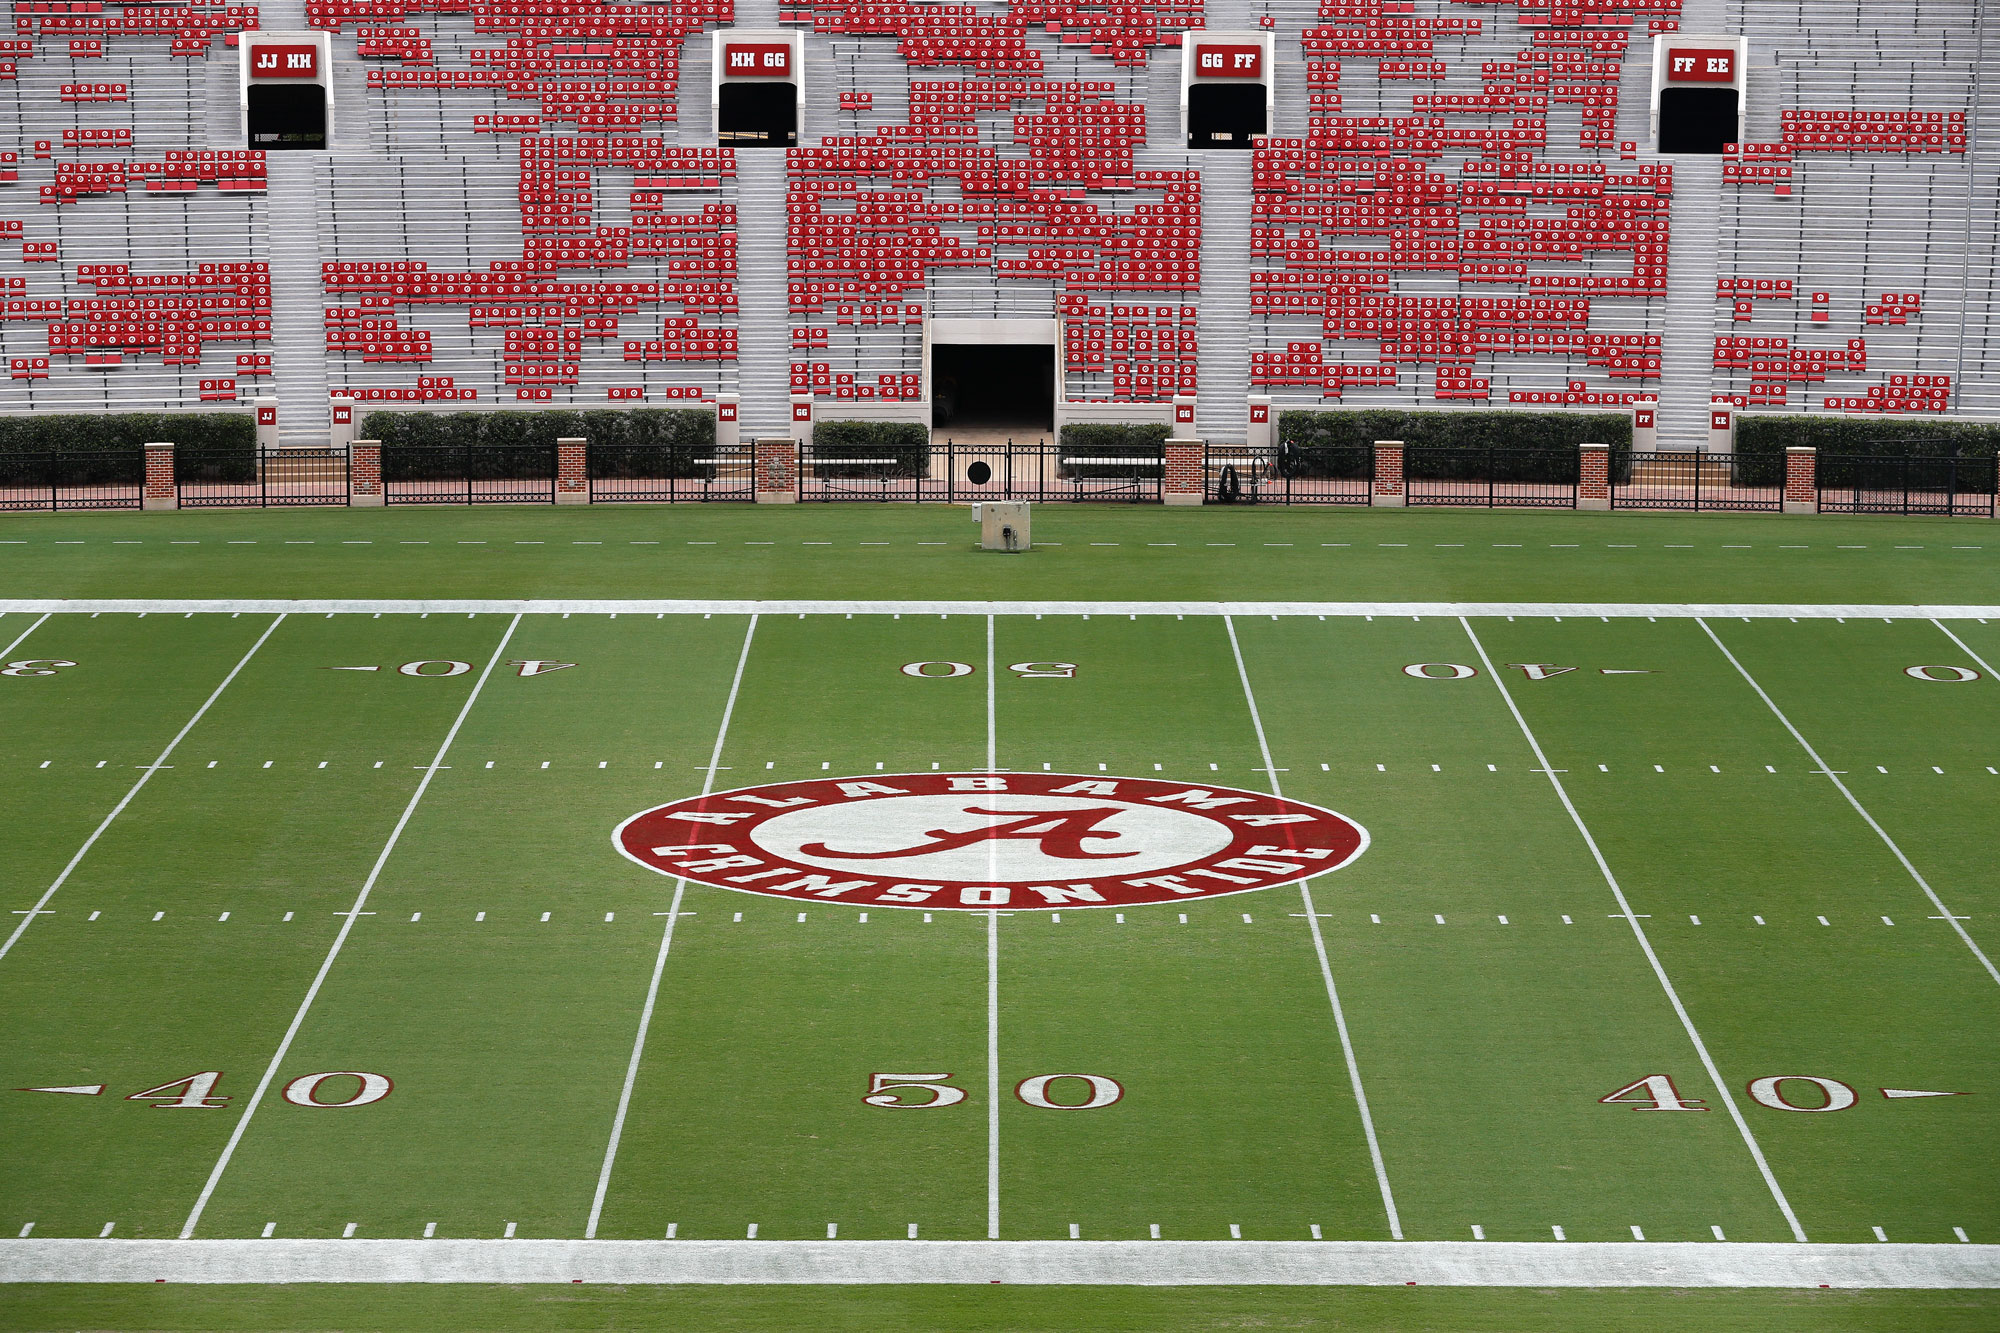 Several University of Alabama football players test positive for Covid-19, reports say